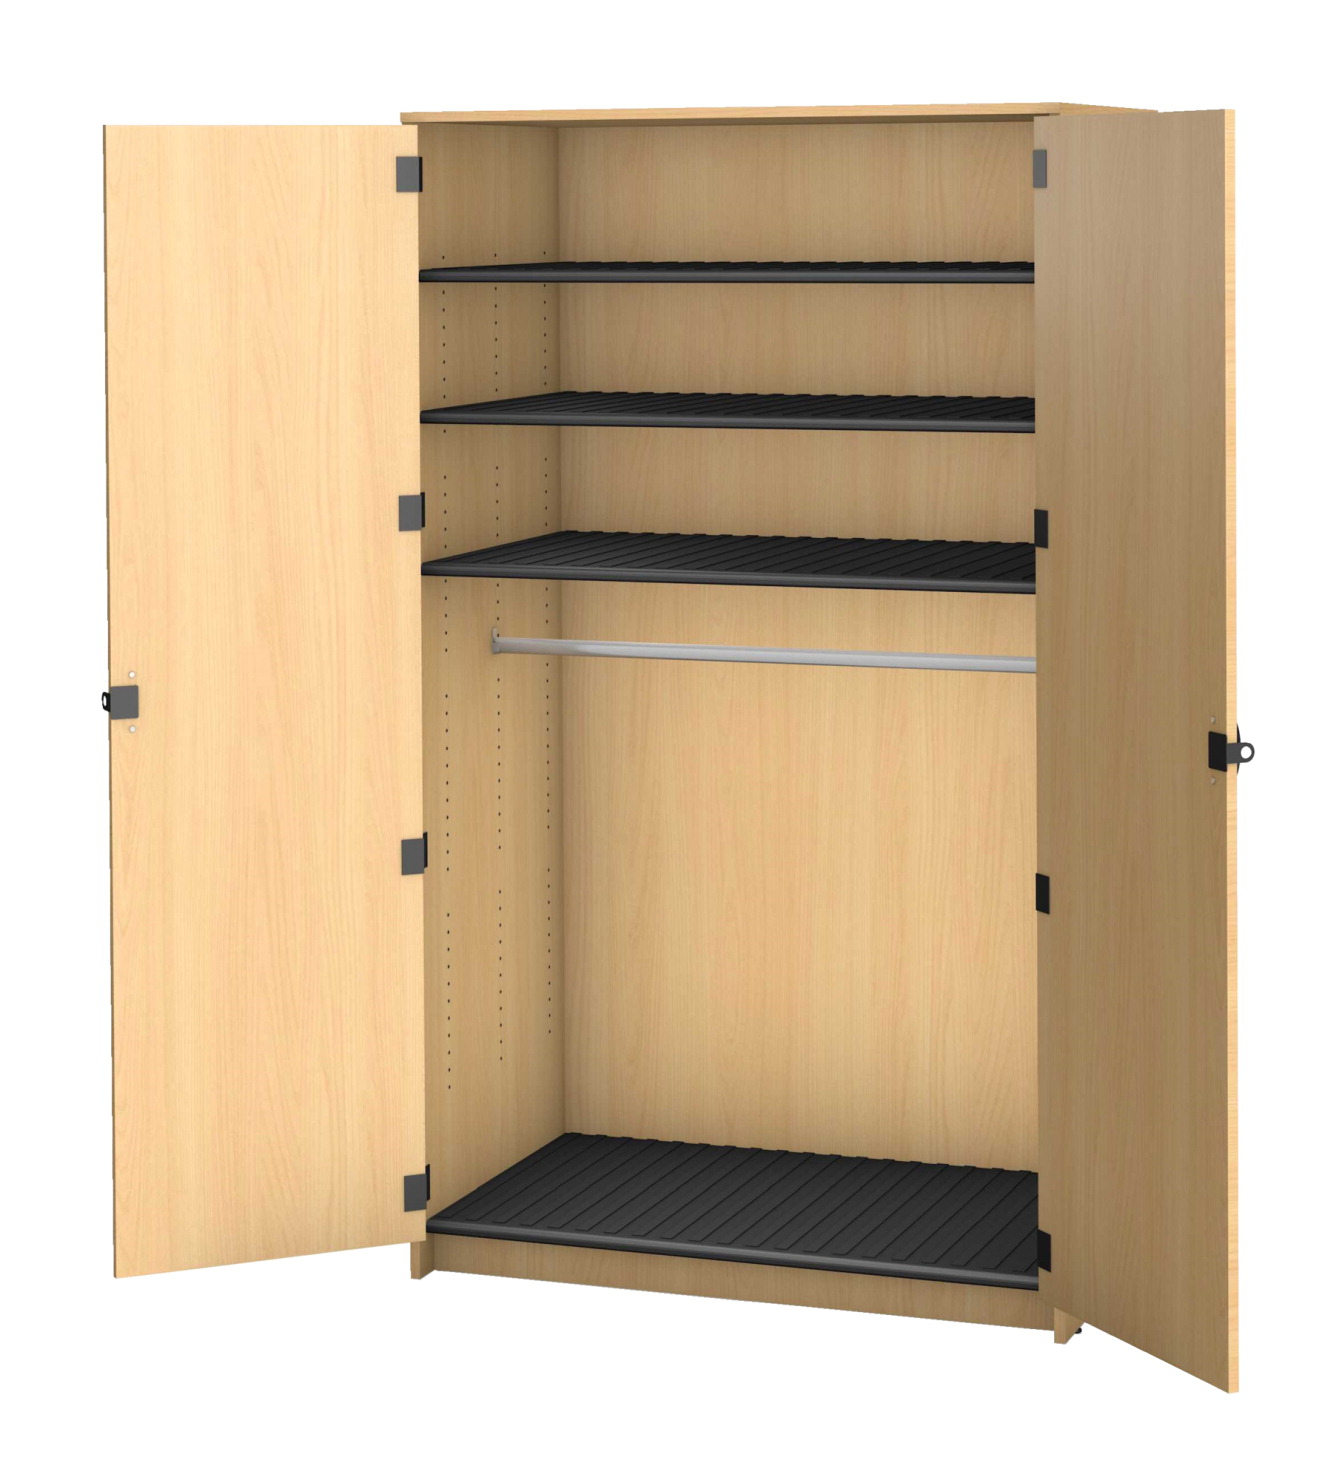 Fleetwood Harmony Rod Garment Storage, 3 Shelves, 48 x 30 x 84 Inches, Fusion Maple